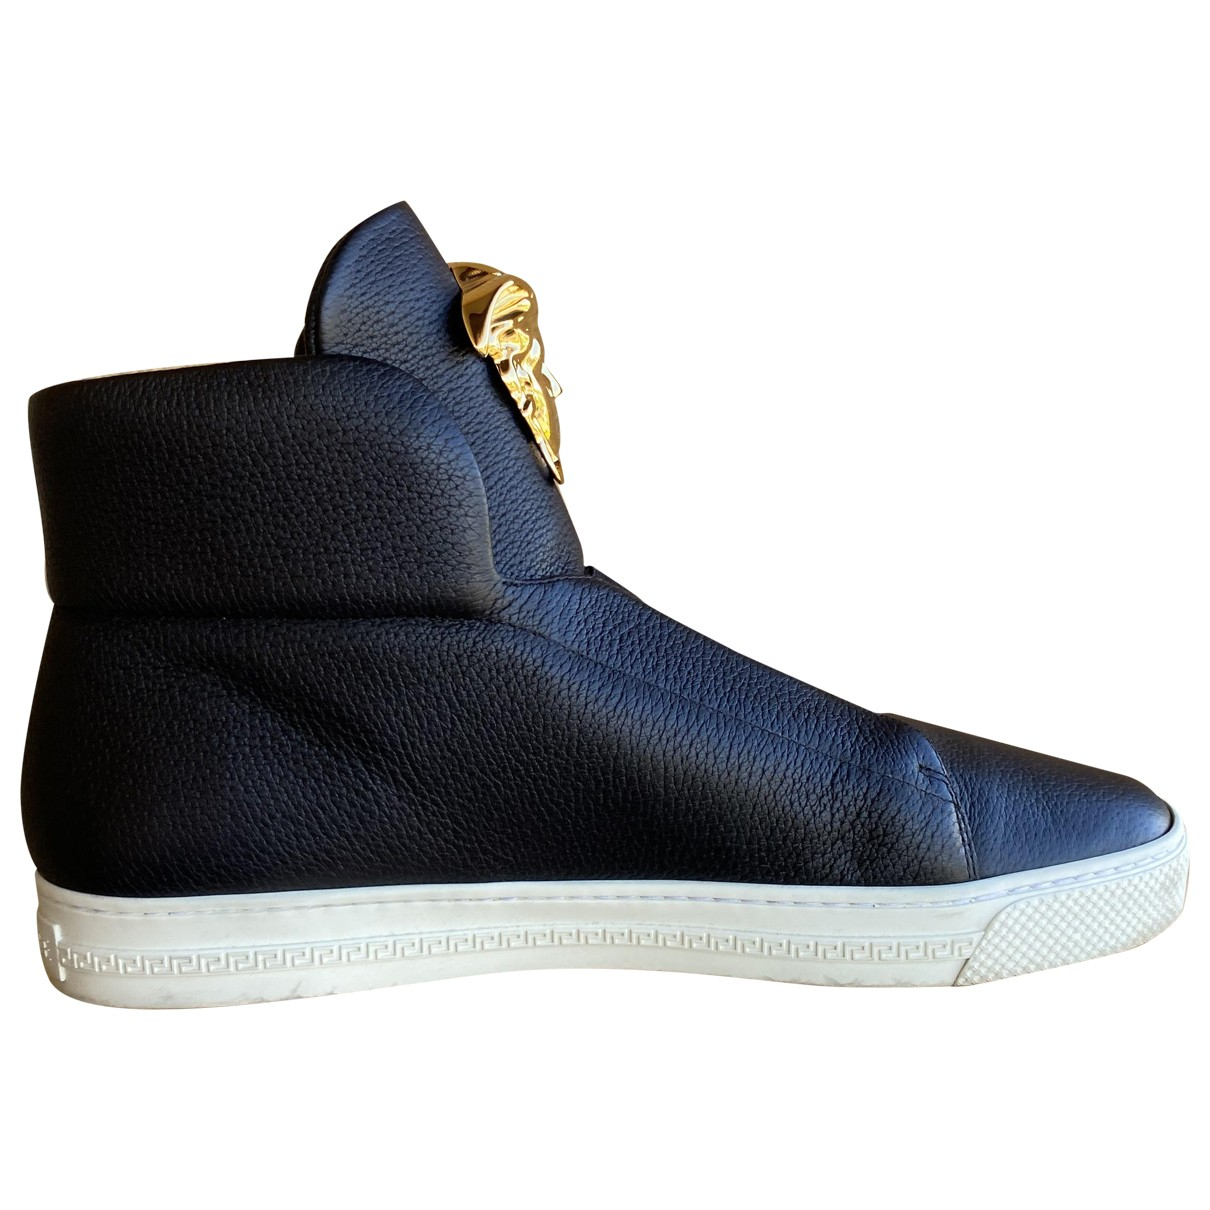 Versace N Black Leather Trainers for Men 43 EU